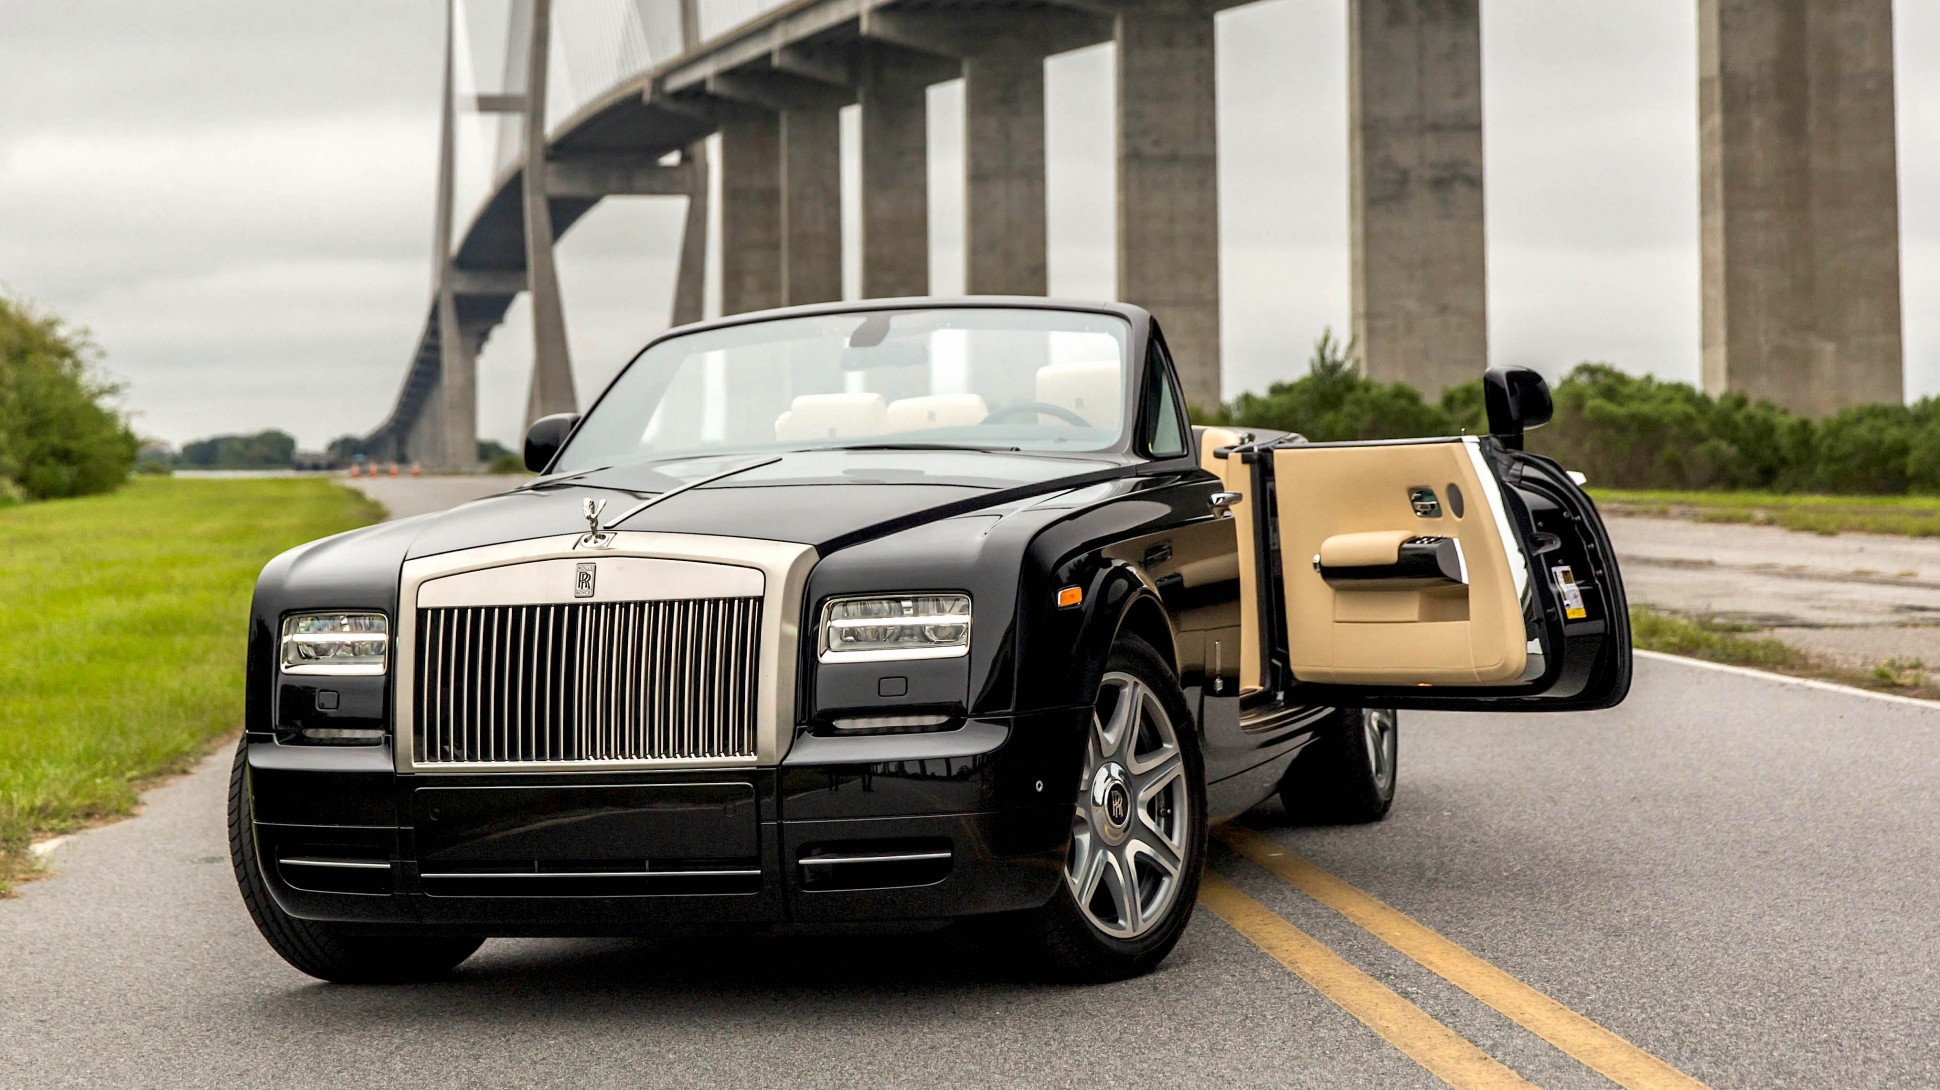 Rolls-Royce Phantom Drophead